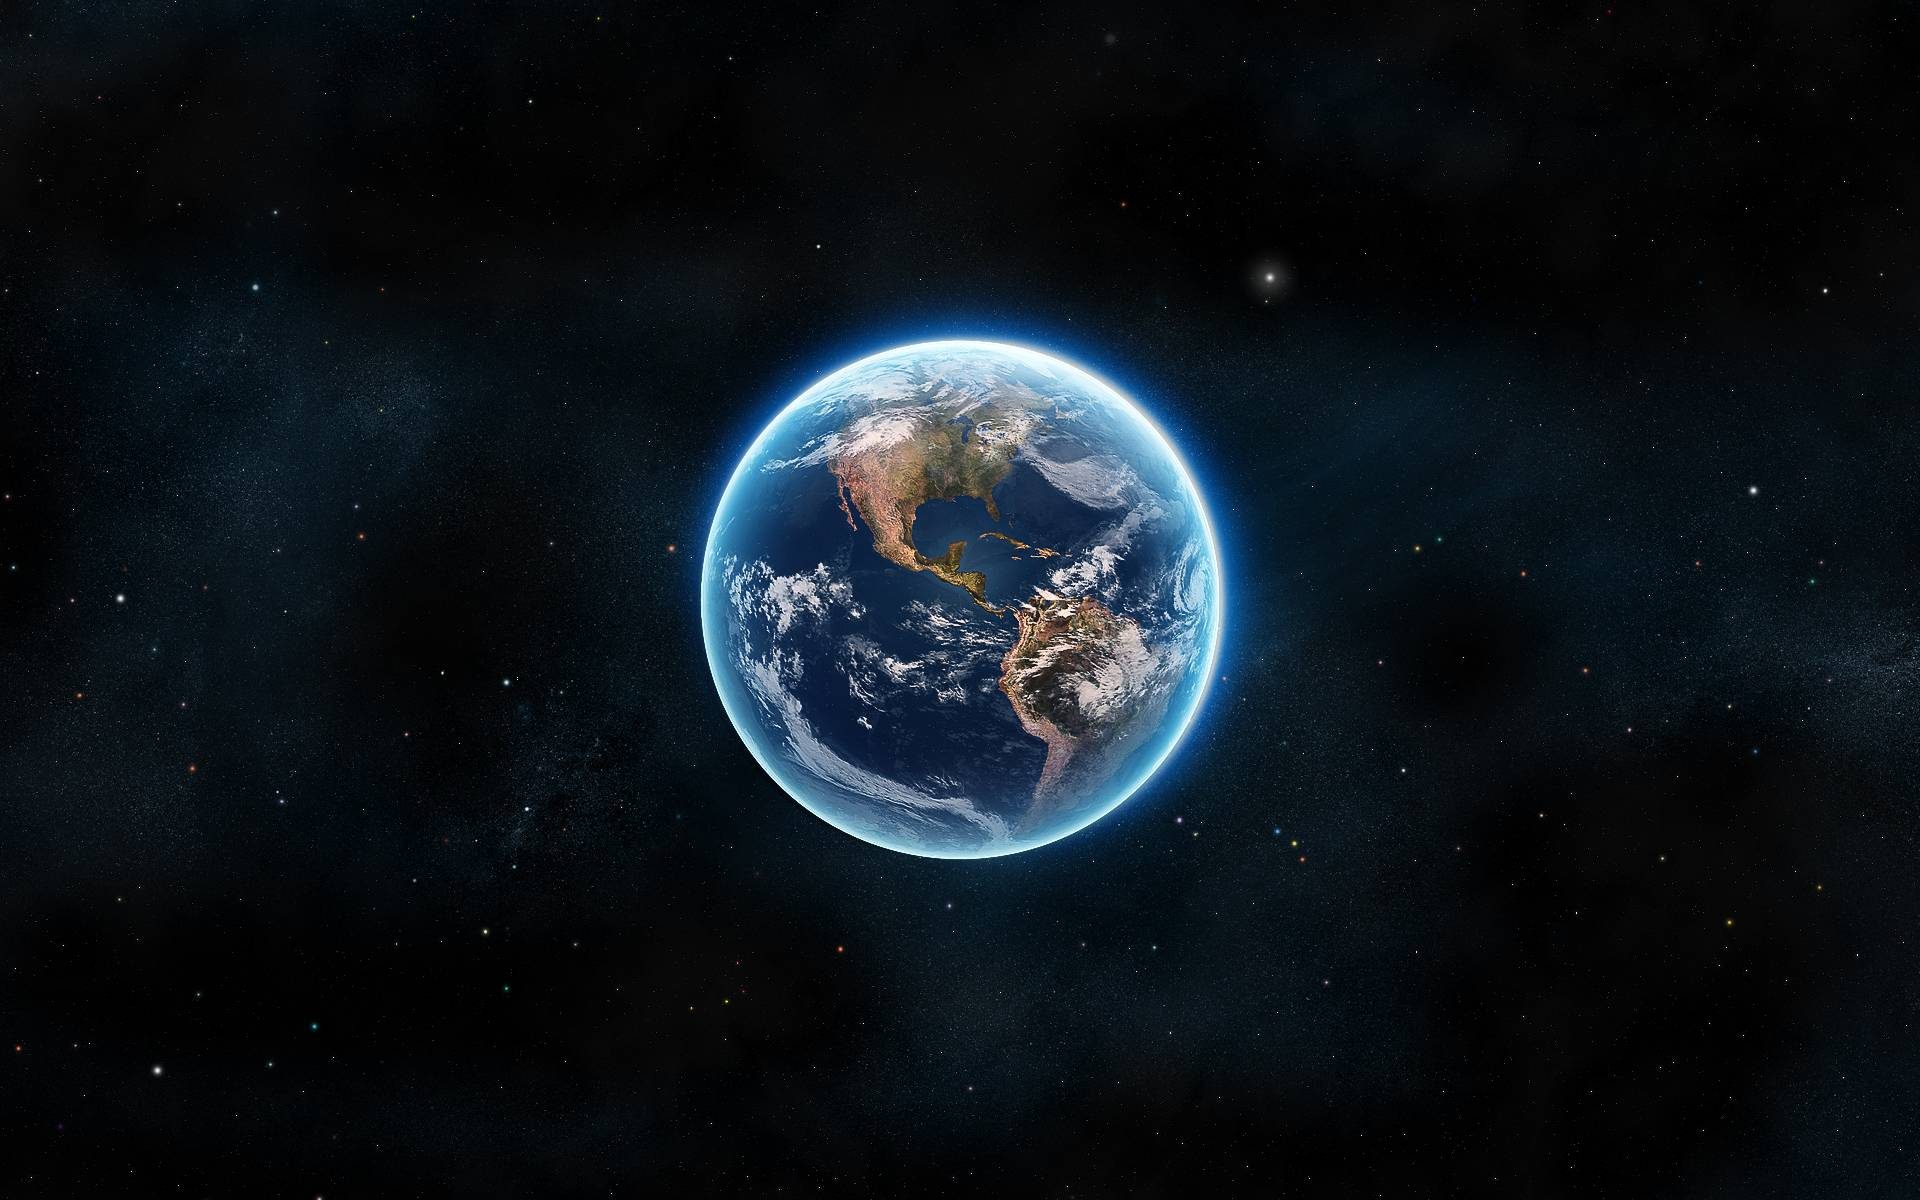 Earth From Space Wallpaper 1920X1200 19276 Hd Wallpapers in Space ...